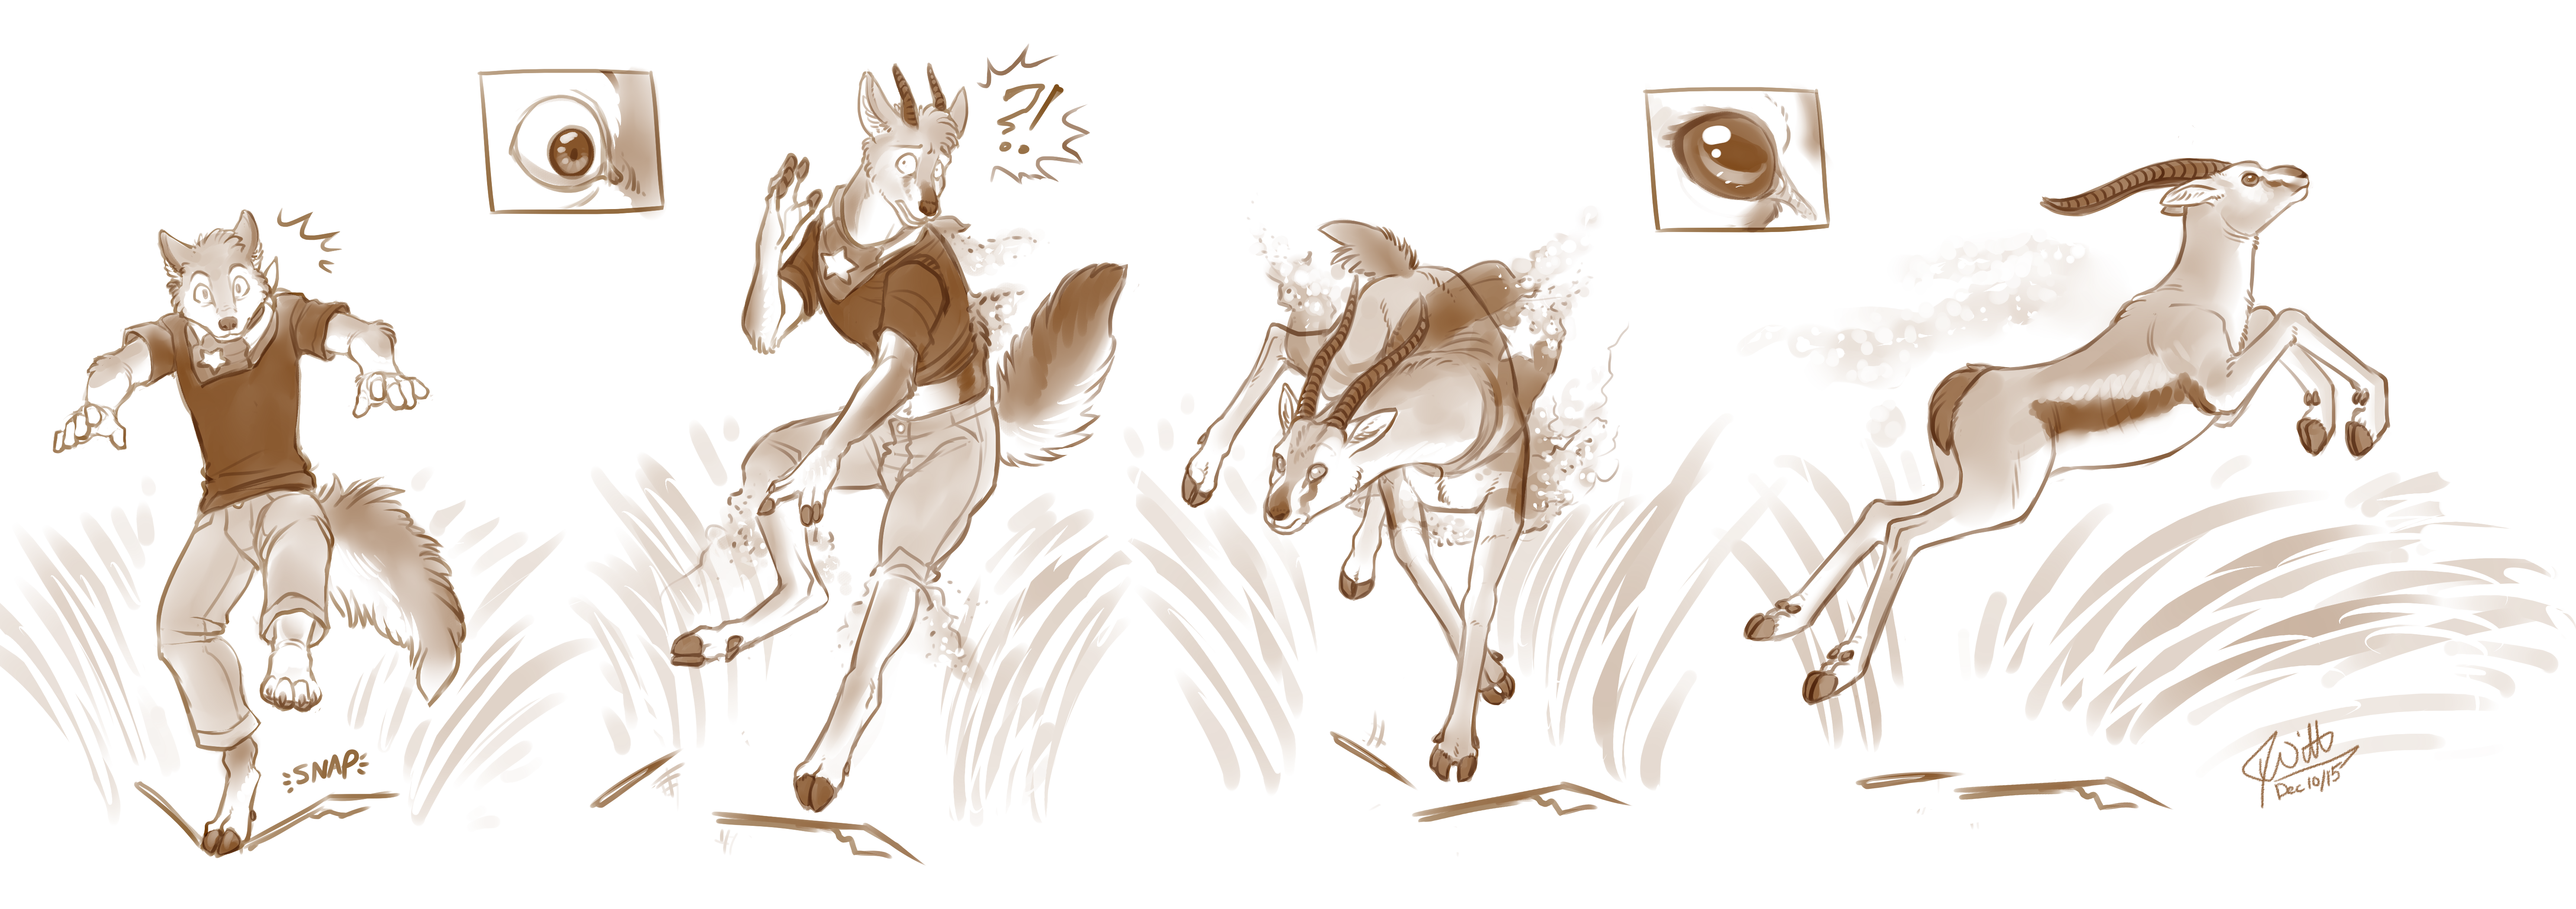 Wolf Transformation Sequence Fight or Flight (Anthr...